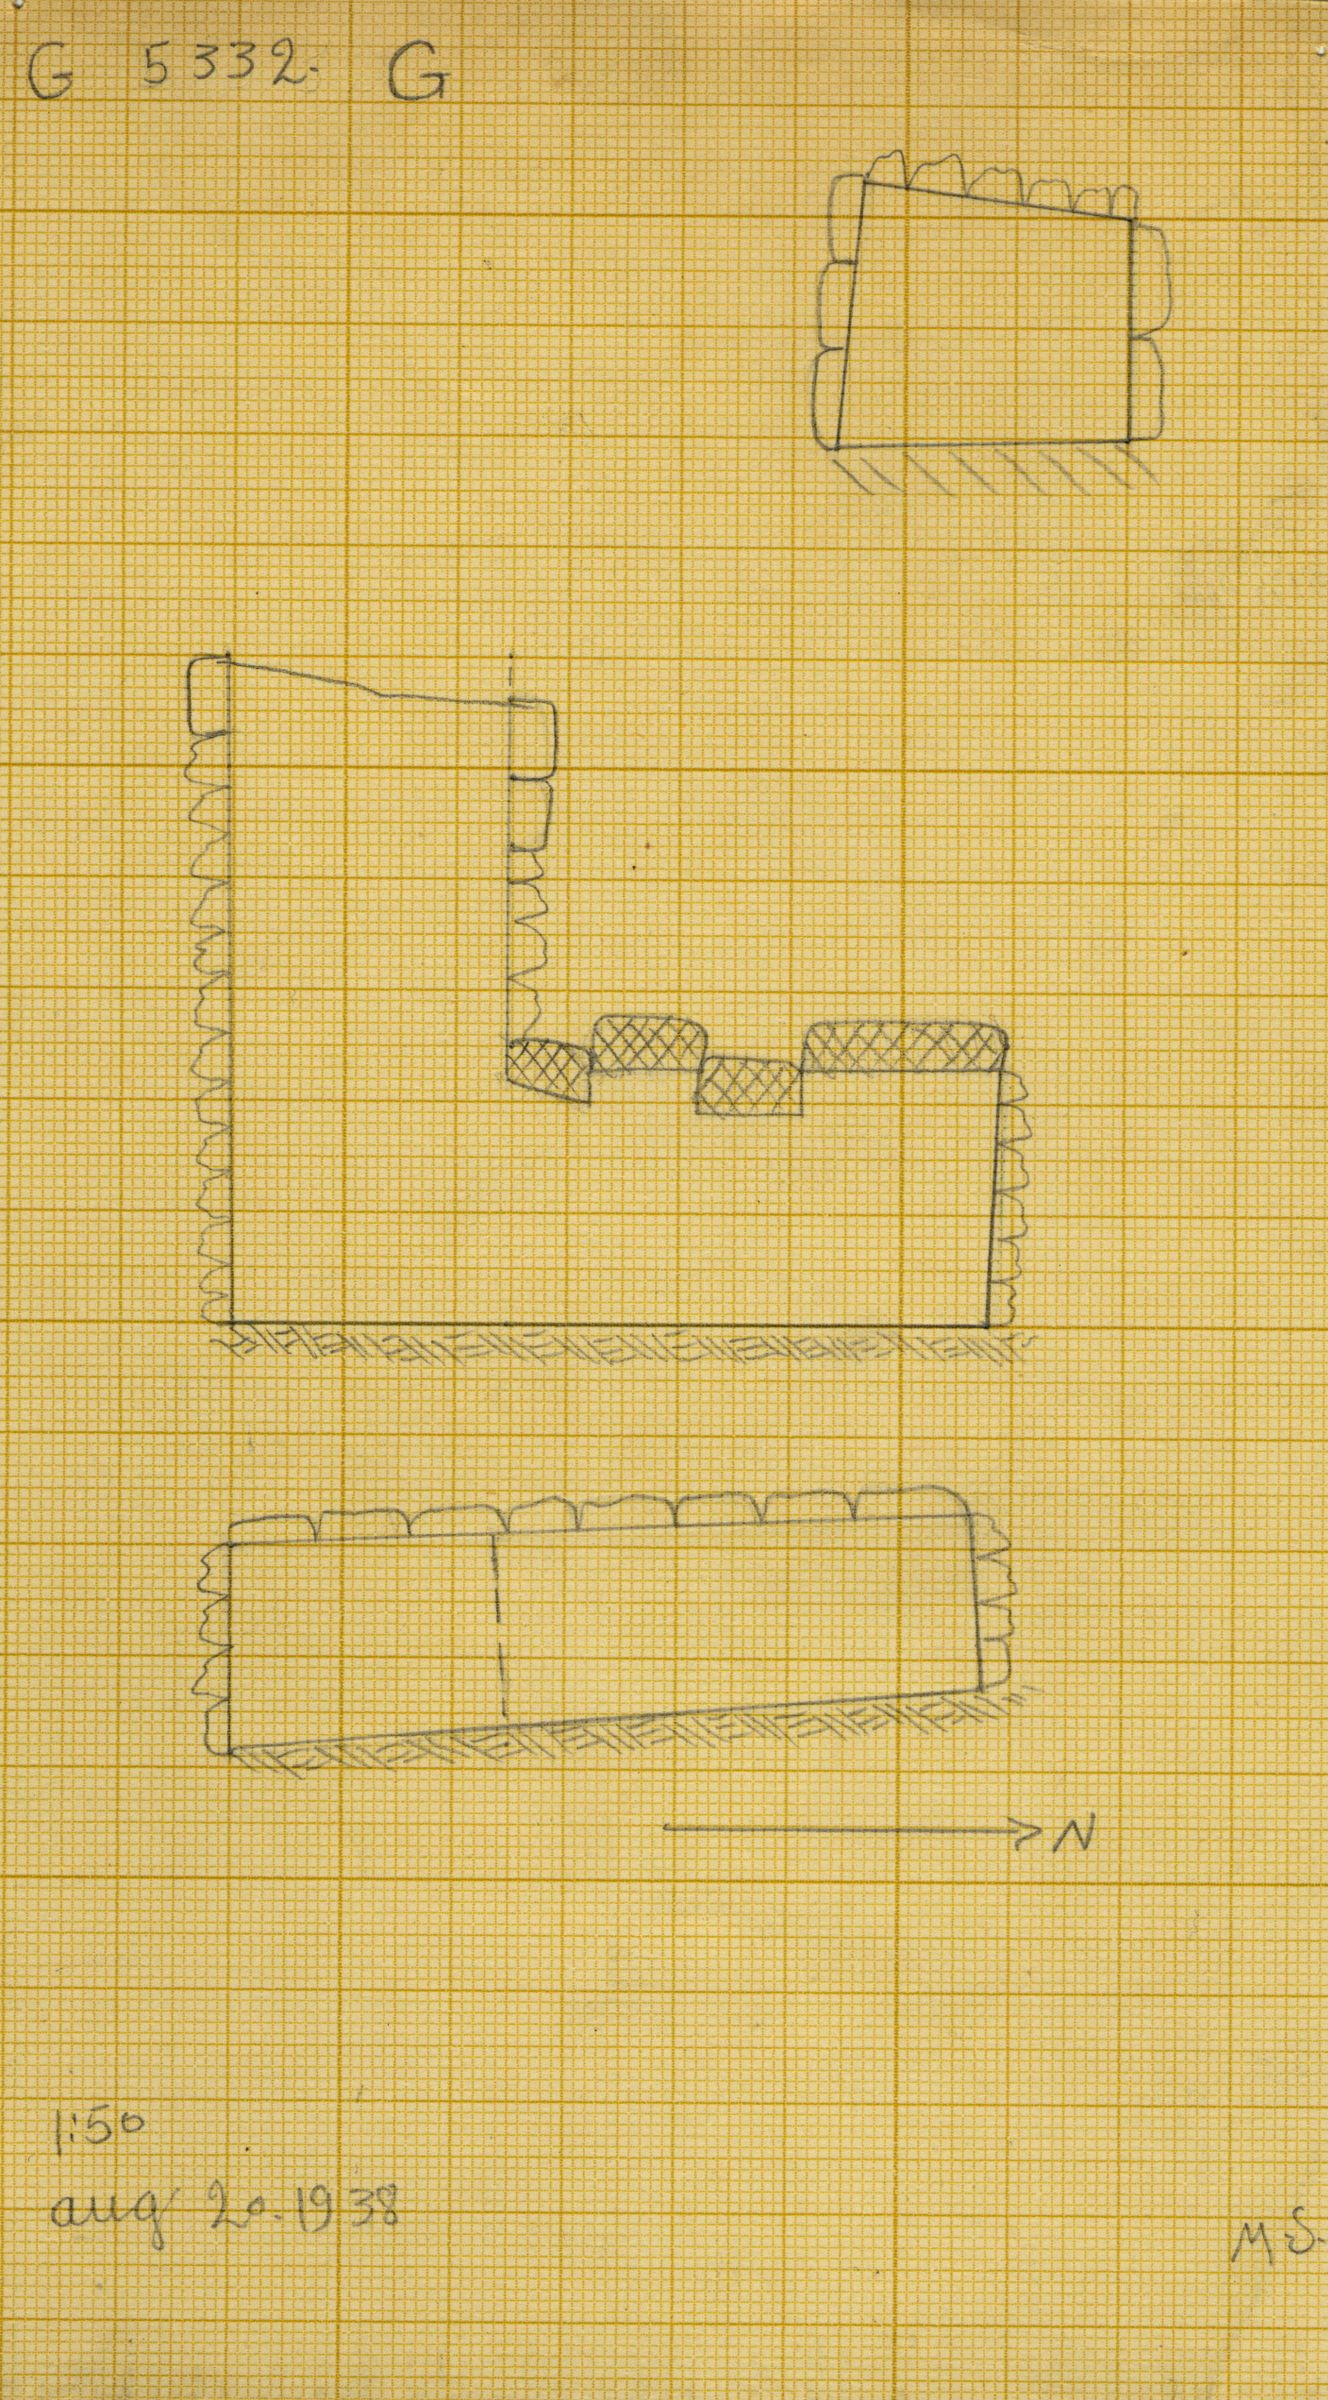 Maps and plans: G 5332, Shaft G (S 801)